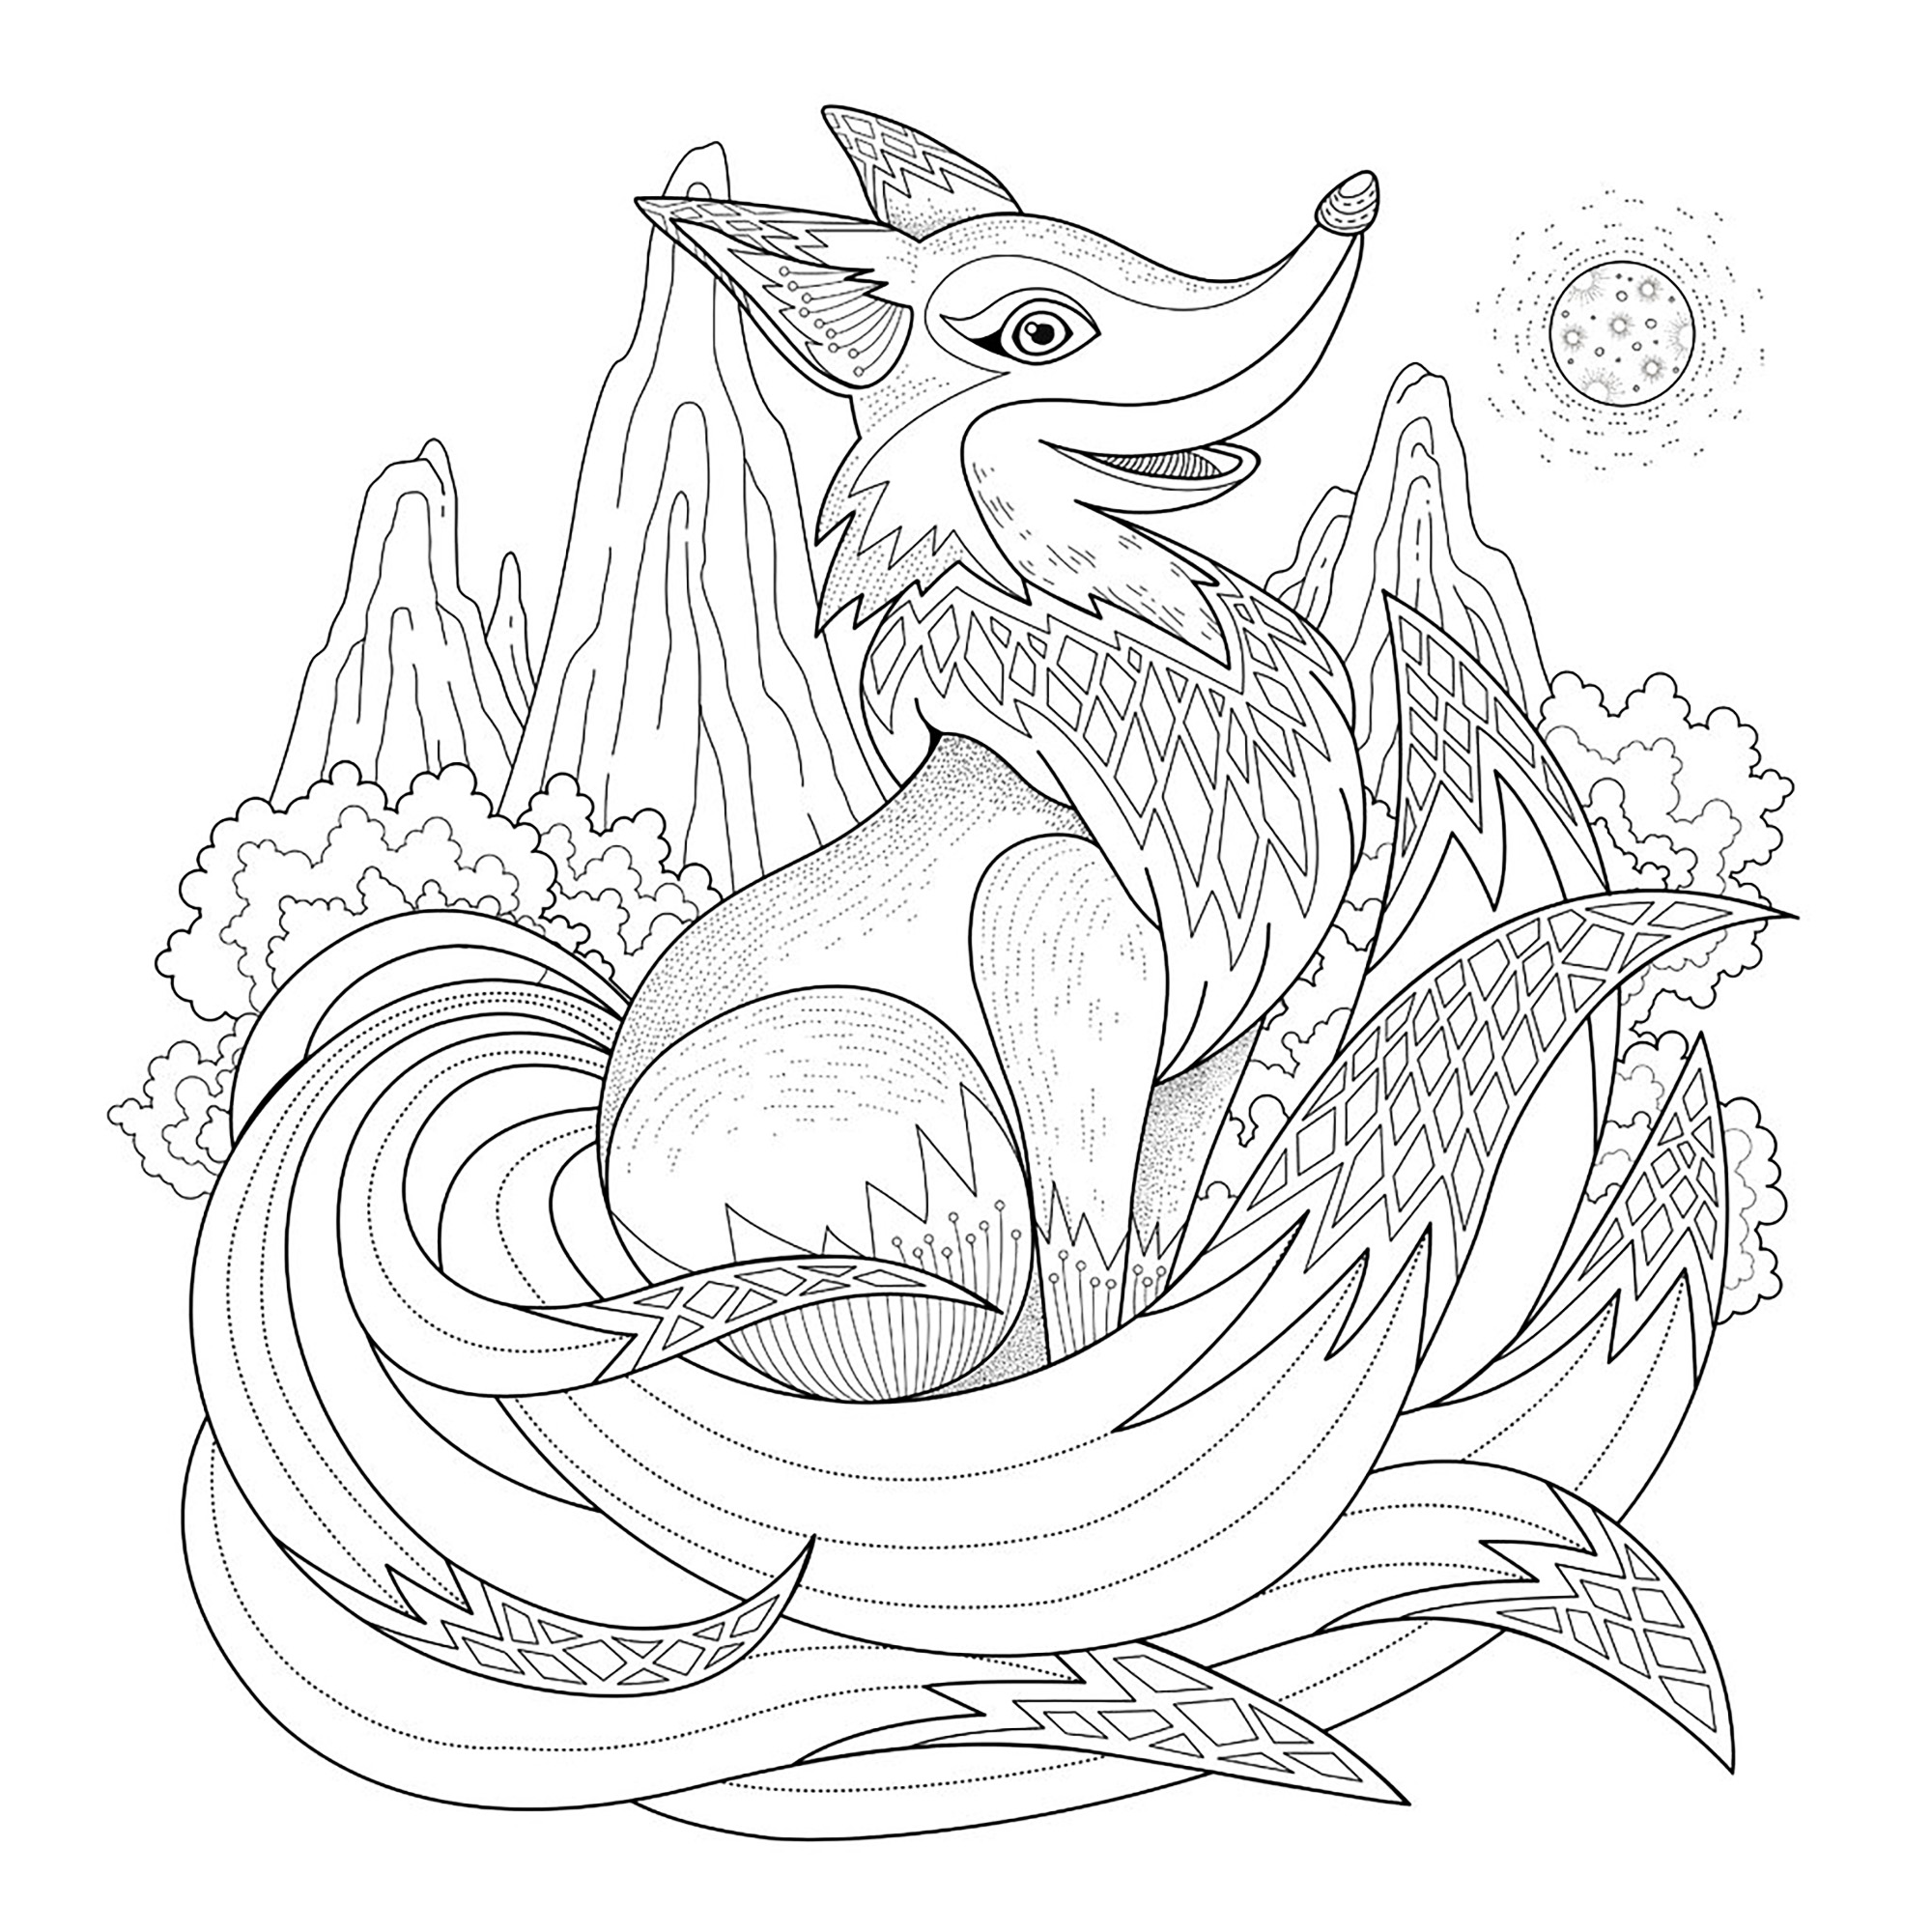 Funny and happy fox - Foxes Adult Coloring Pages